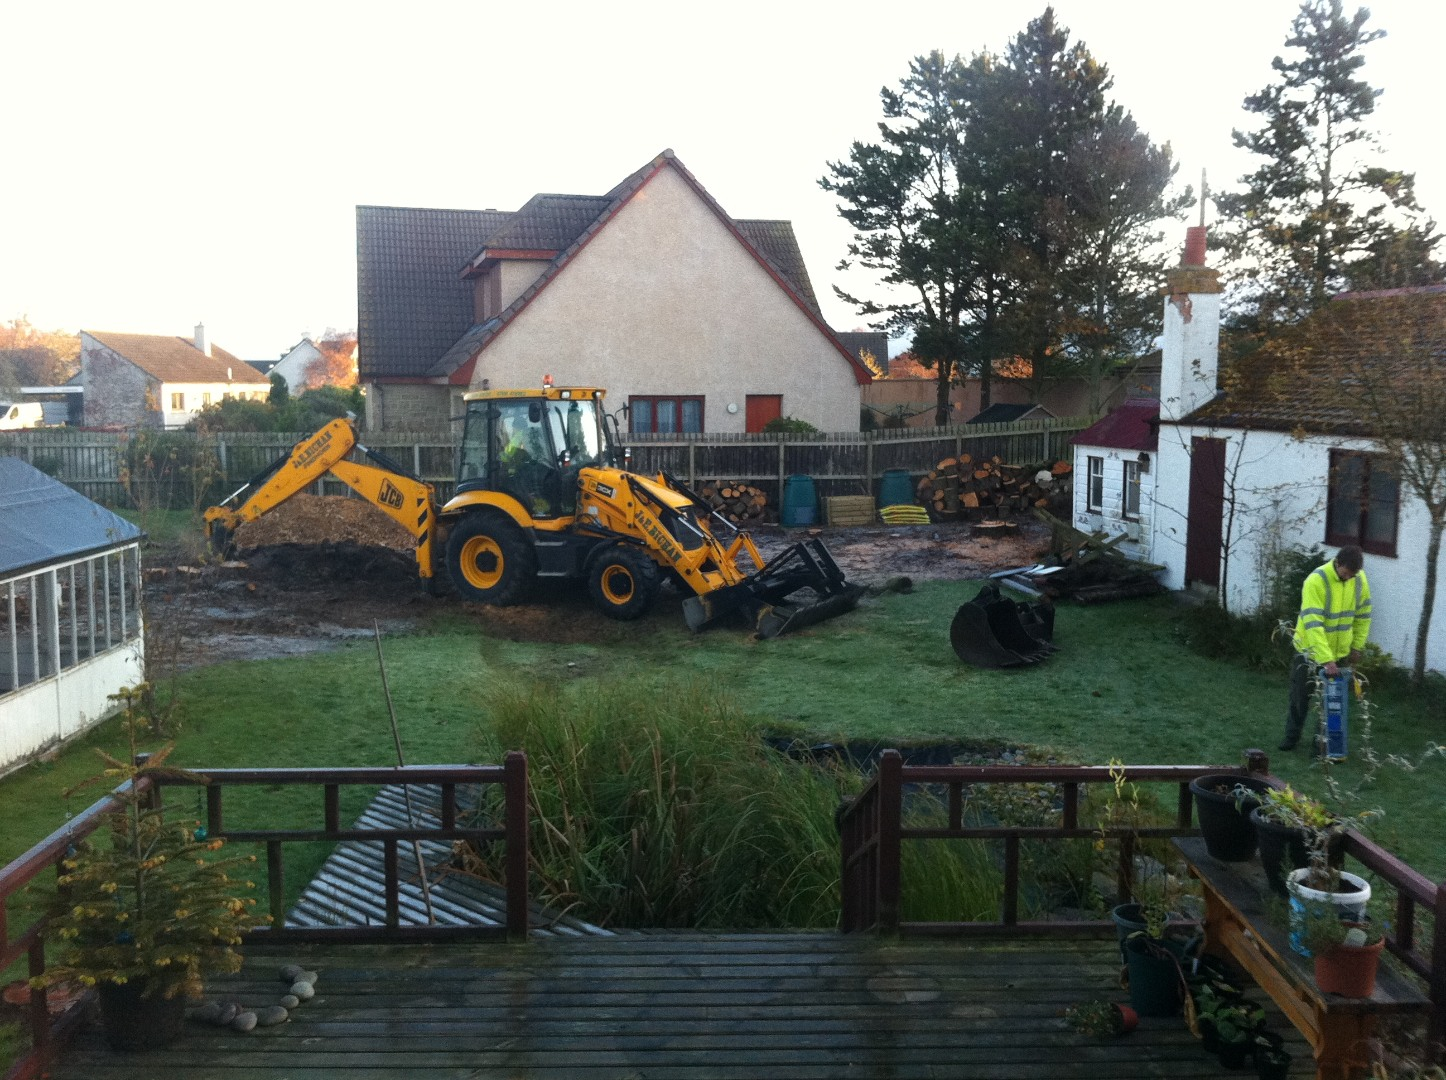 The JCB starts work